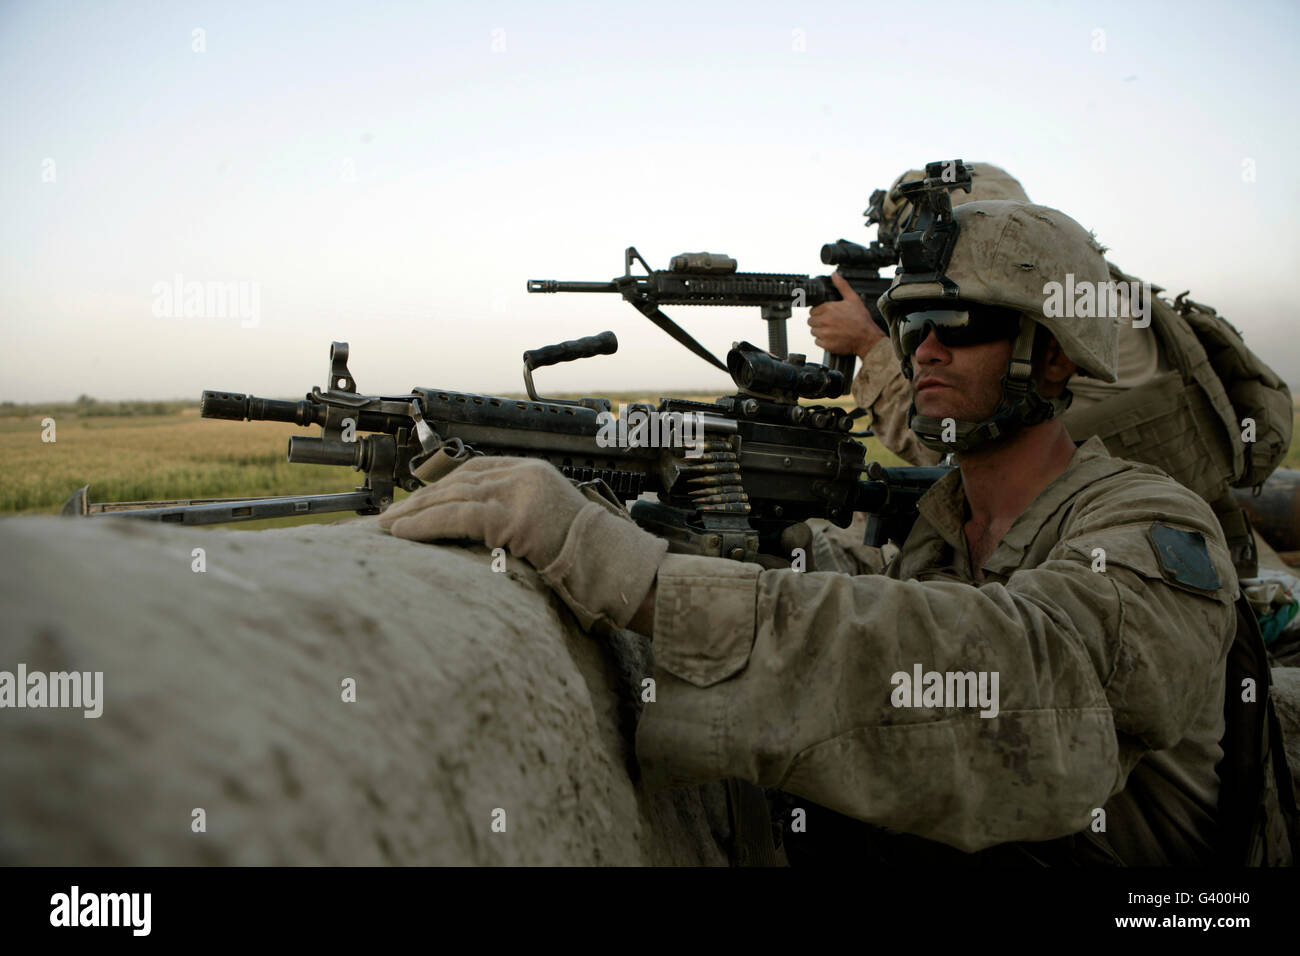 U.S. Marines observe the movement of enemy forces. - Stock Image